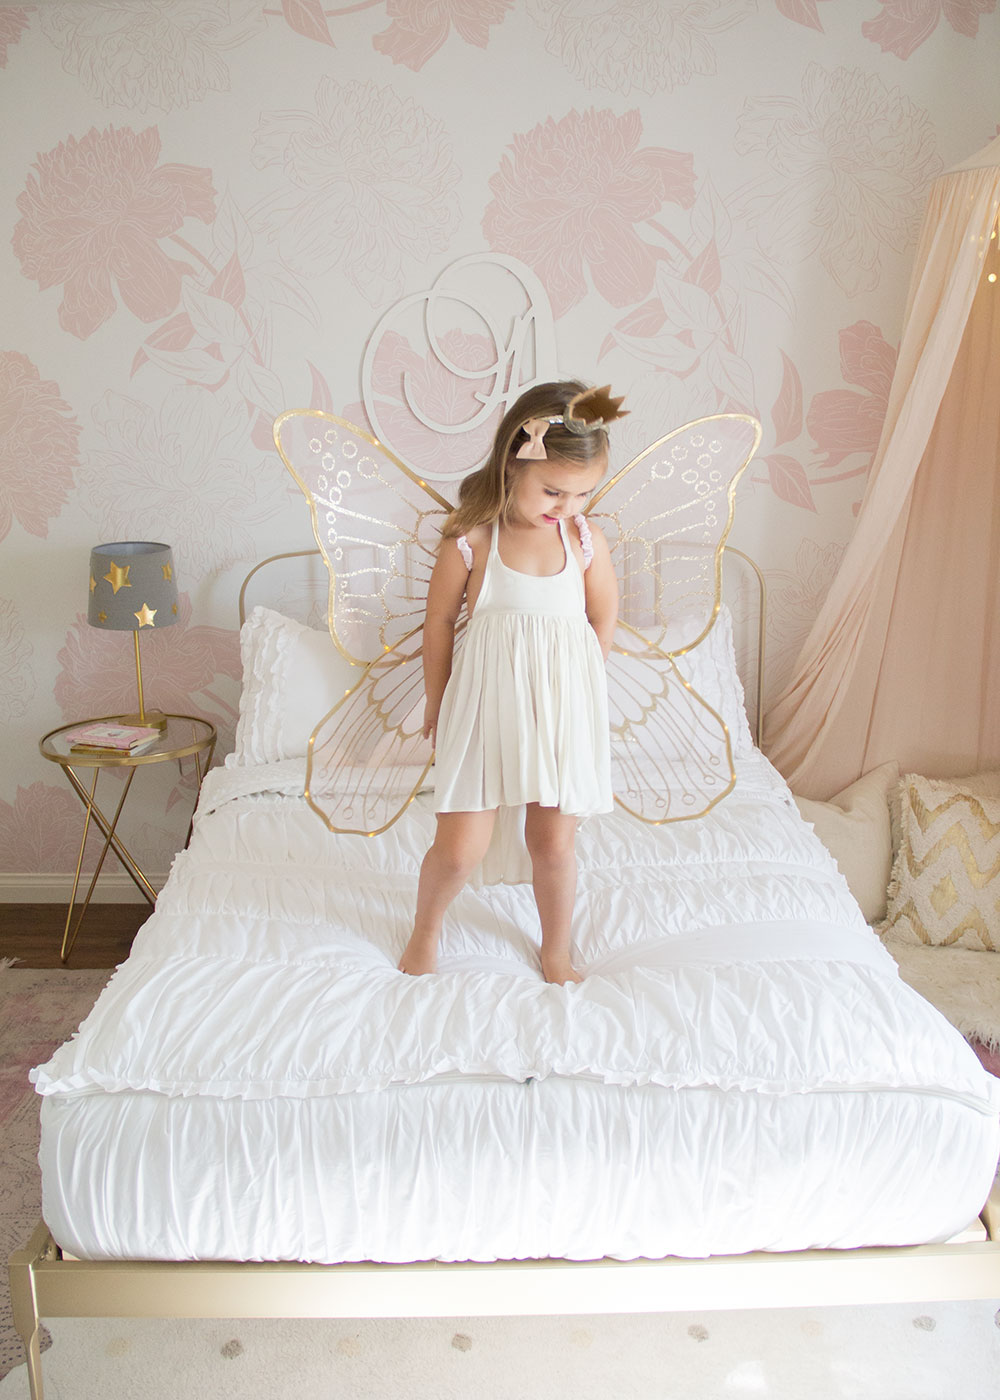 this little fairy girl is loving her super easy beddy's bedding for her new big girl room! | thelovedesignedlife.com